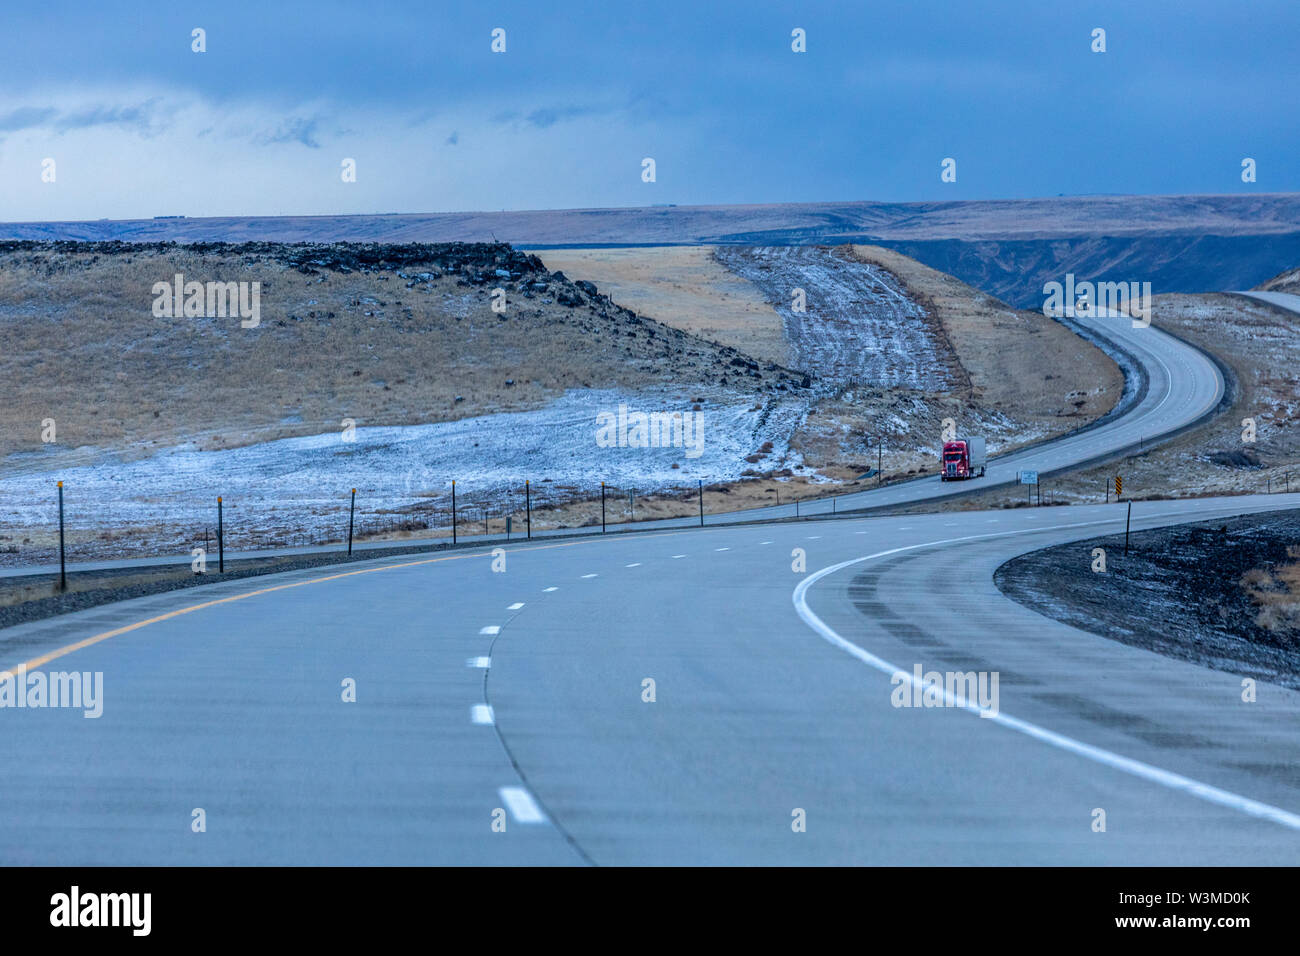 Highway during winter in Glenns Ferry, Idaho - Stock Image